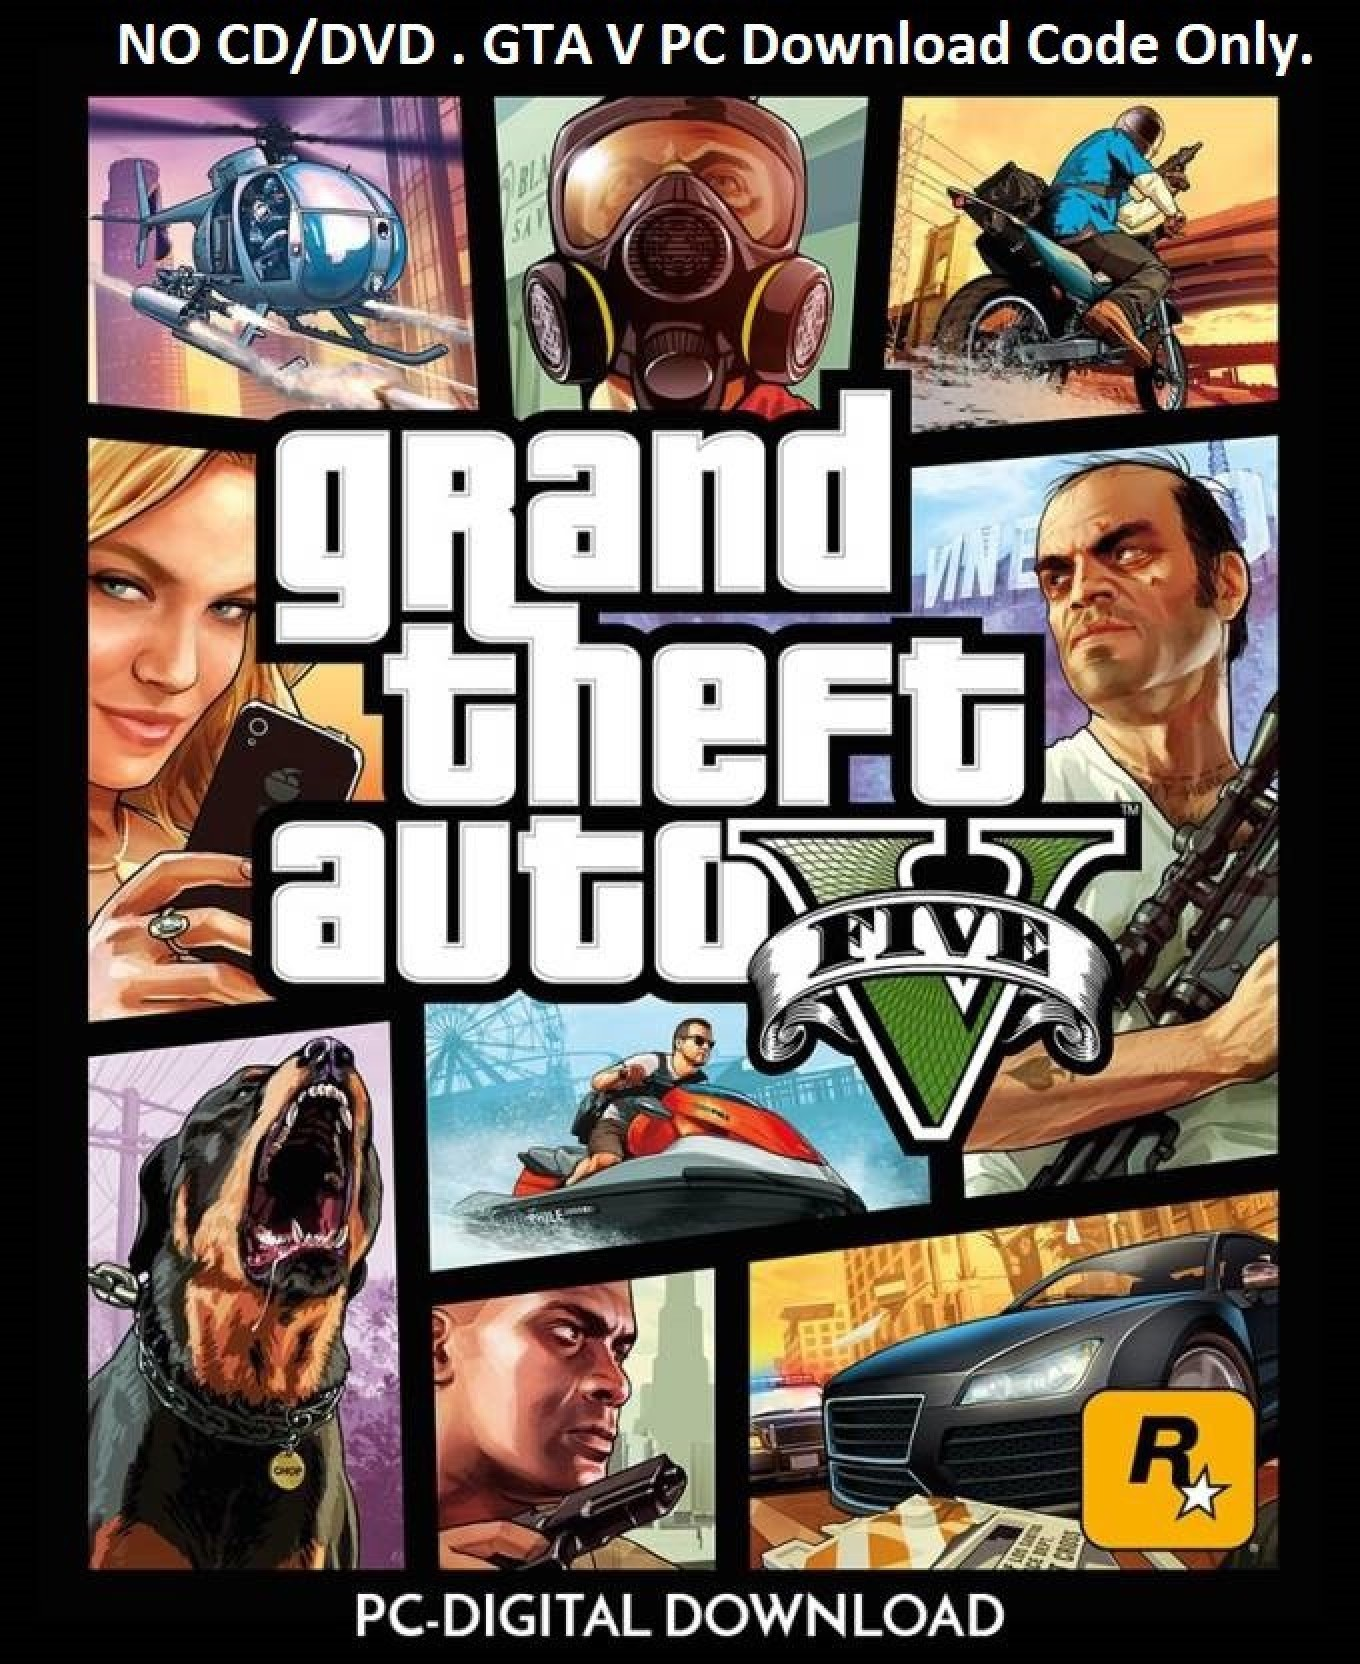 Grand Theft Auto V ROCKSTAR Download code only (No CD/DVD)